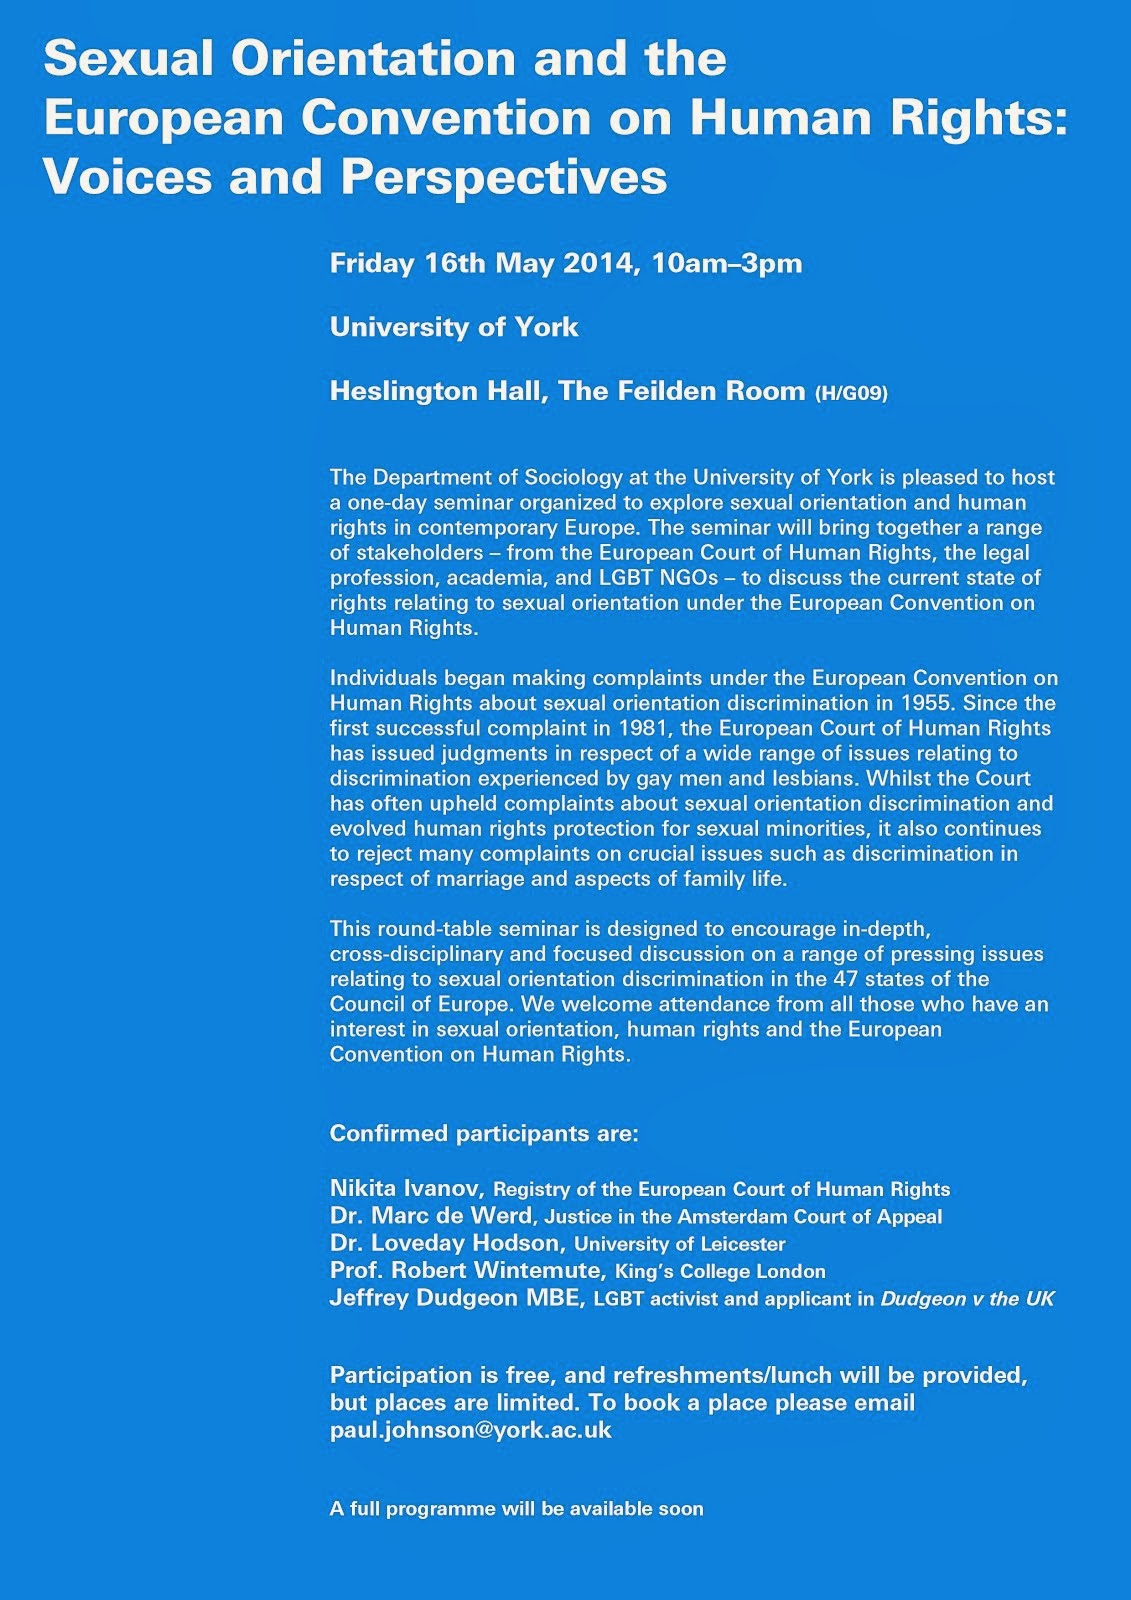 Seminar on sexual orientation and the ECHR at York on Friday 16th May